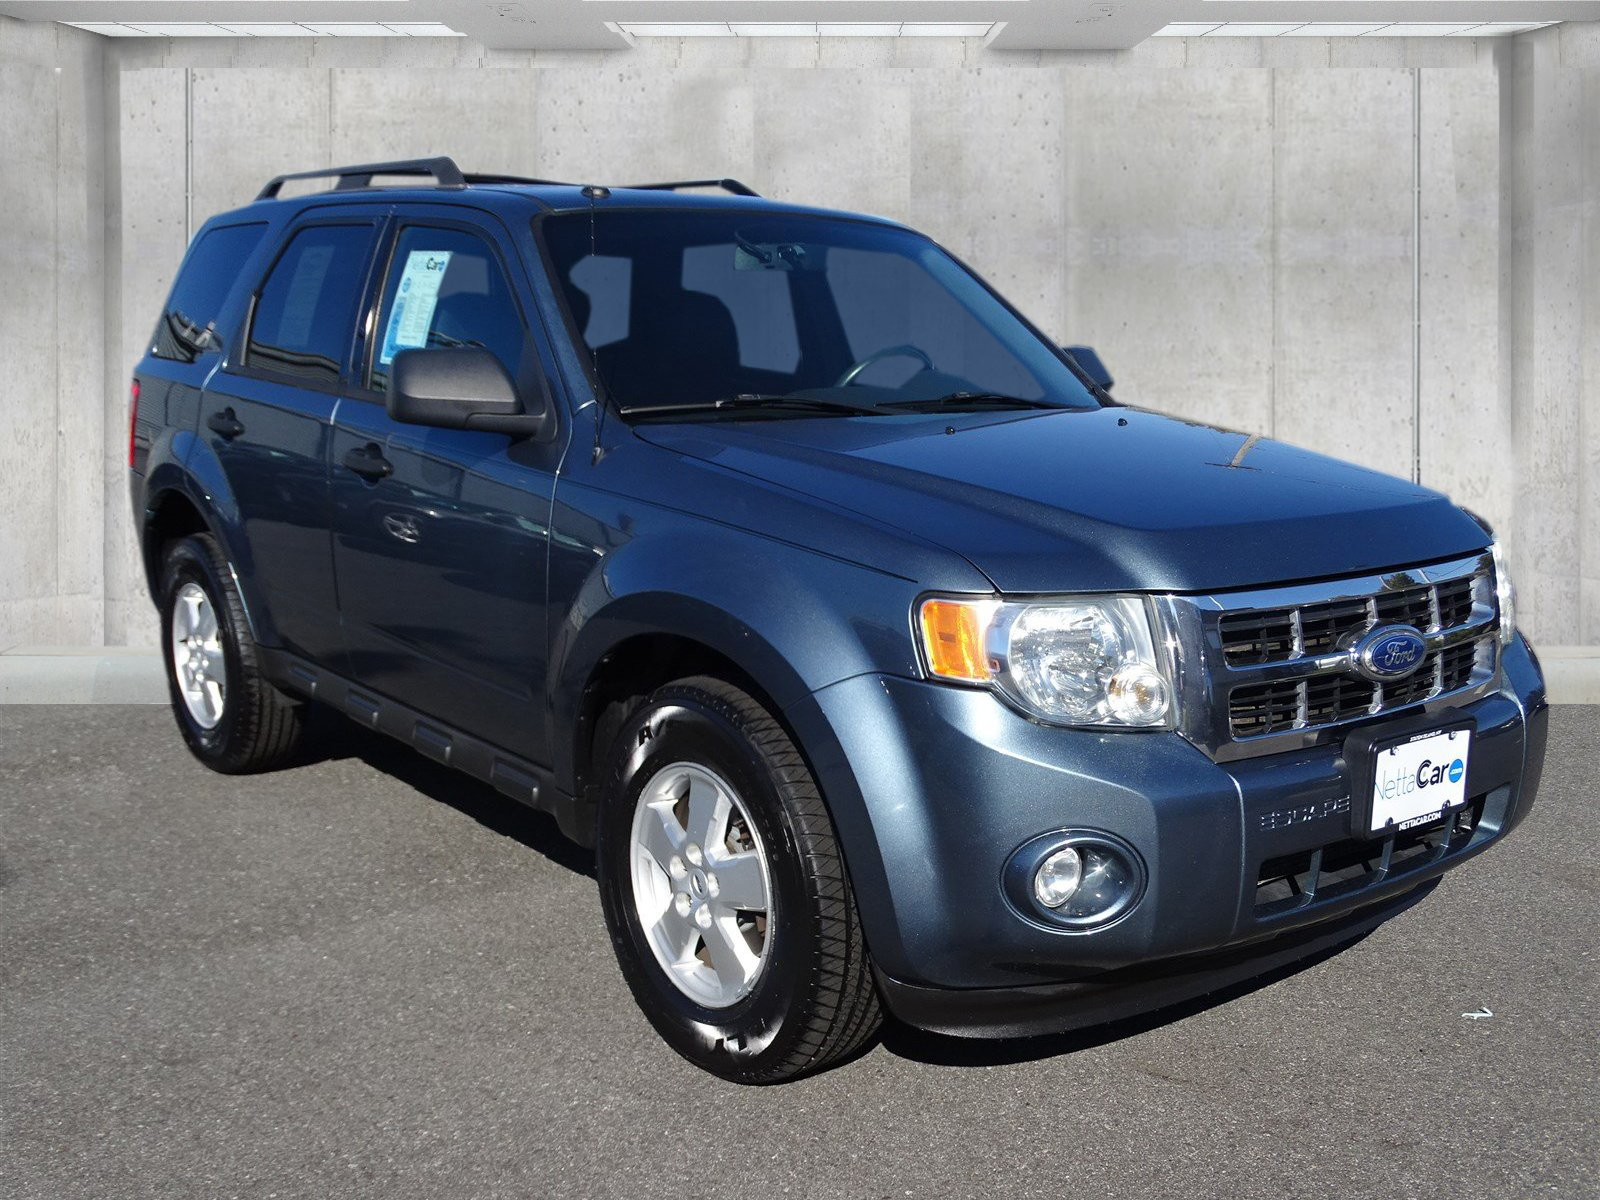 Pre-Owned 2010 Ford Escape XLT